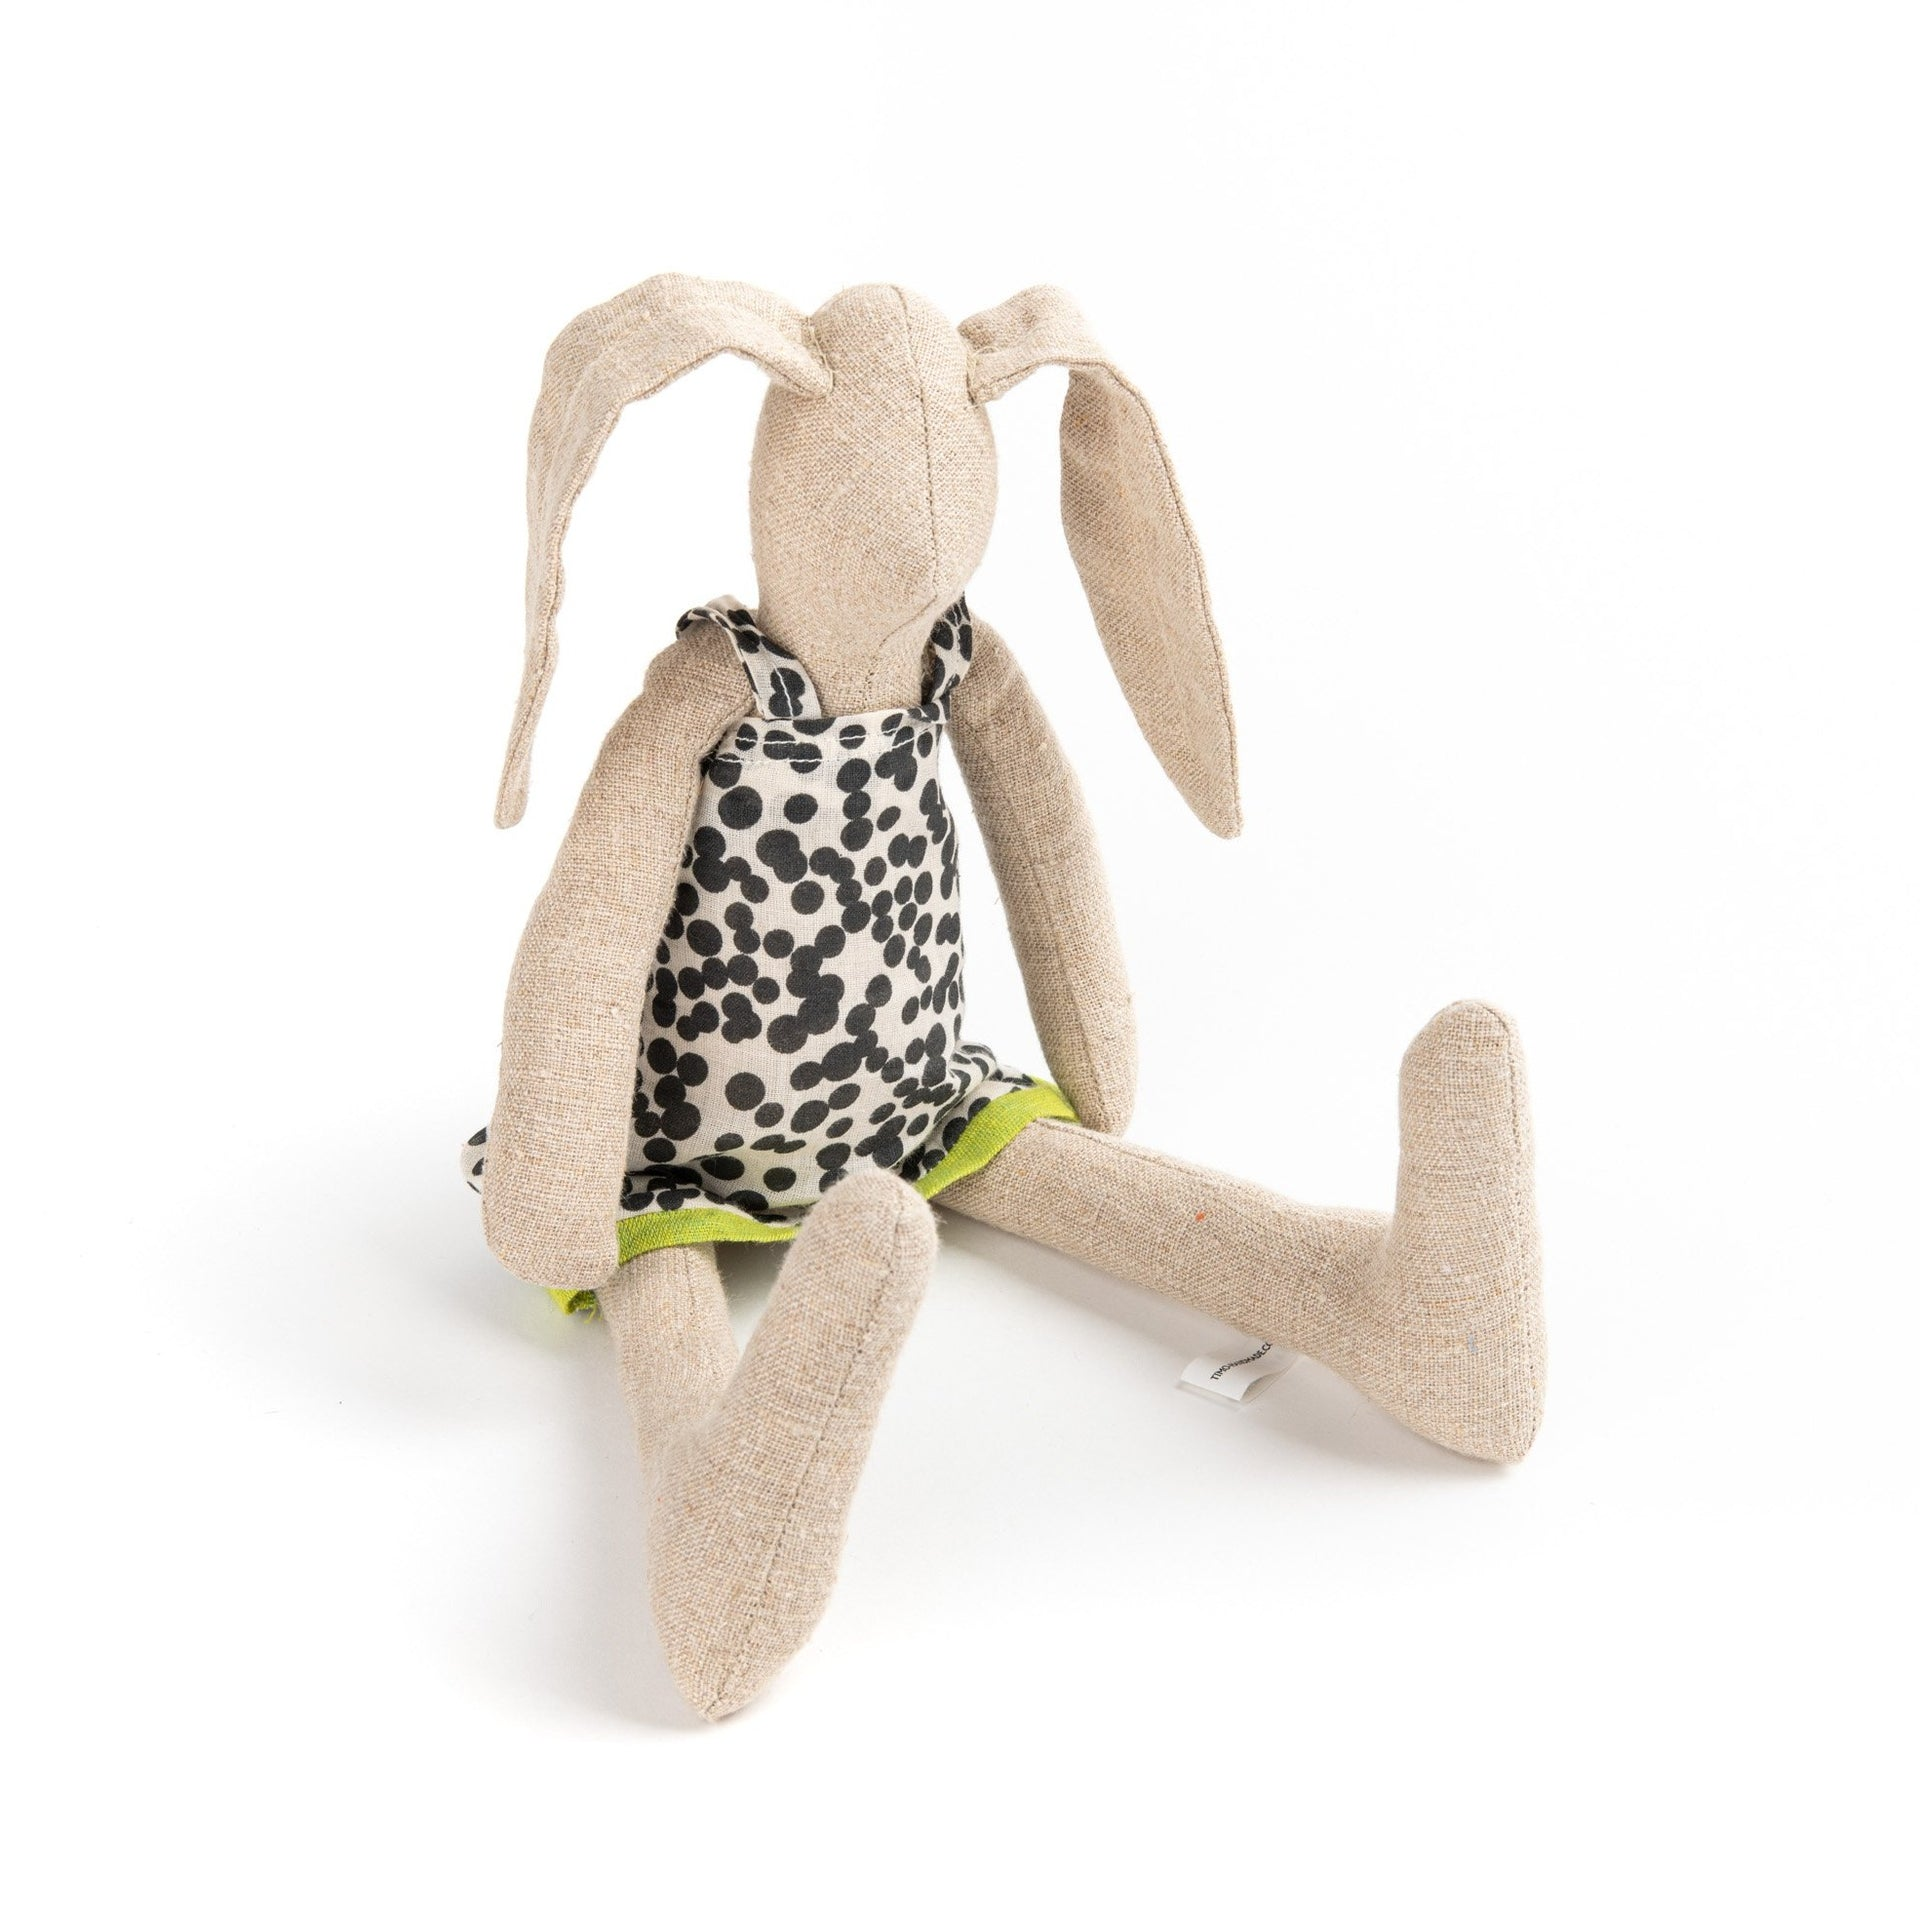 Bunny doll, Eco friendly gift, Baby toddler kids, Home decor toy, Newborn gift idea, Rabbit doll, Fabric doll, Cloth doll, Handmade animal